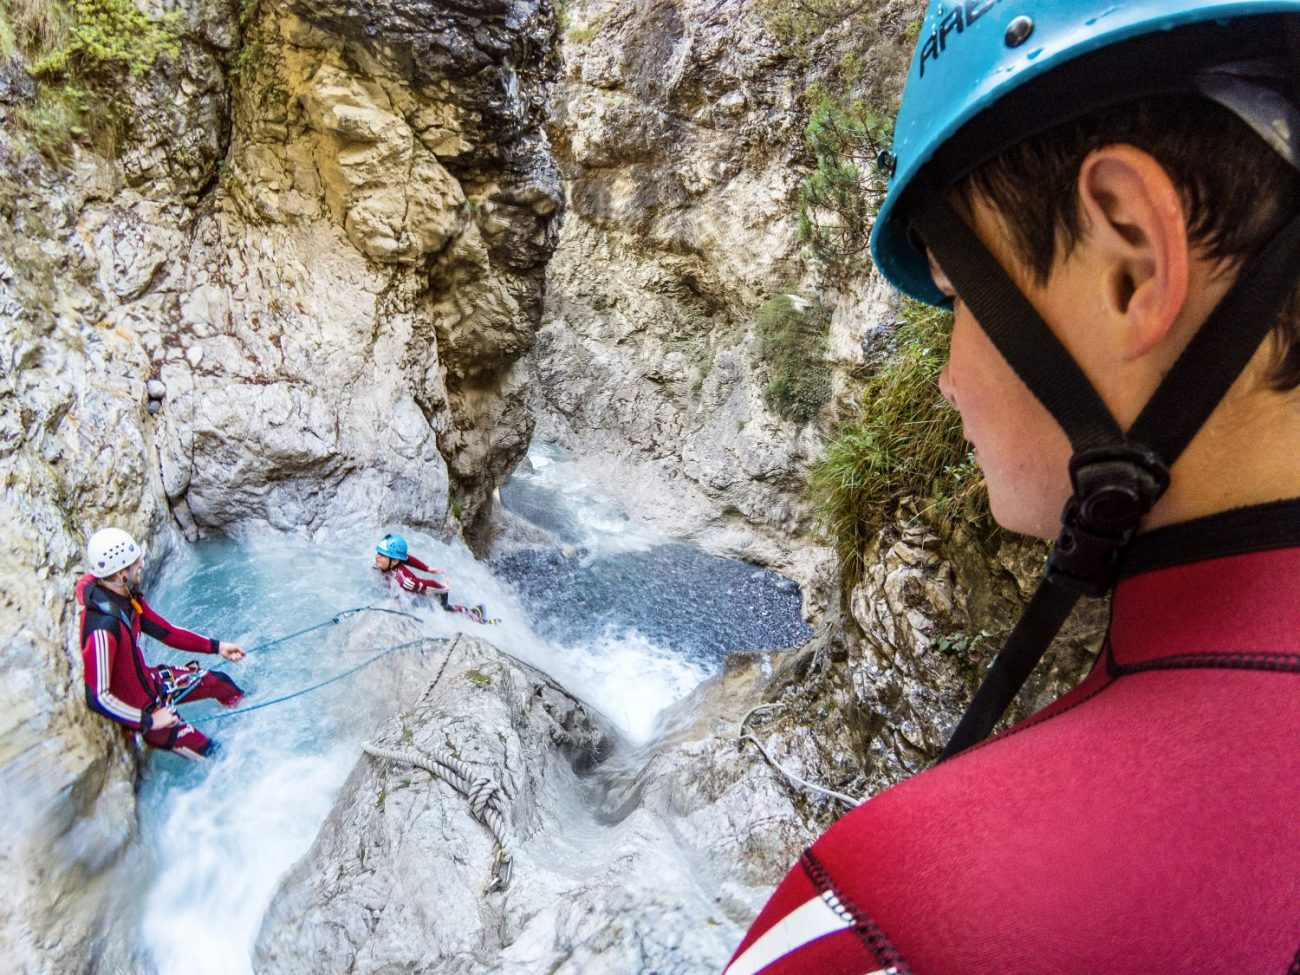 Canyoning: Trust each other